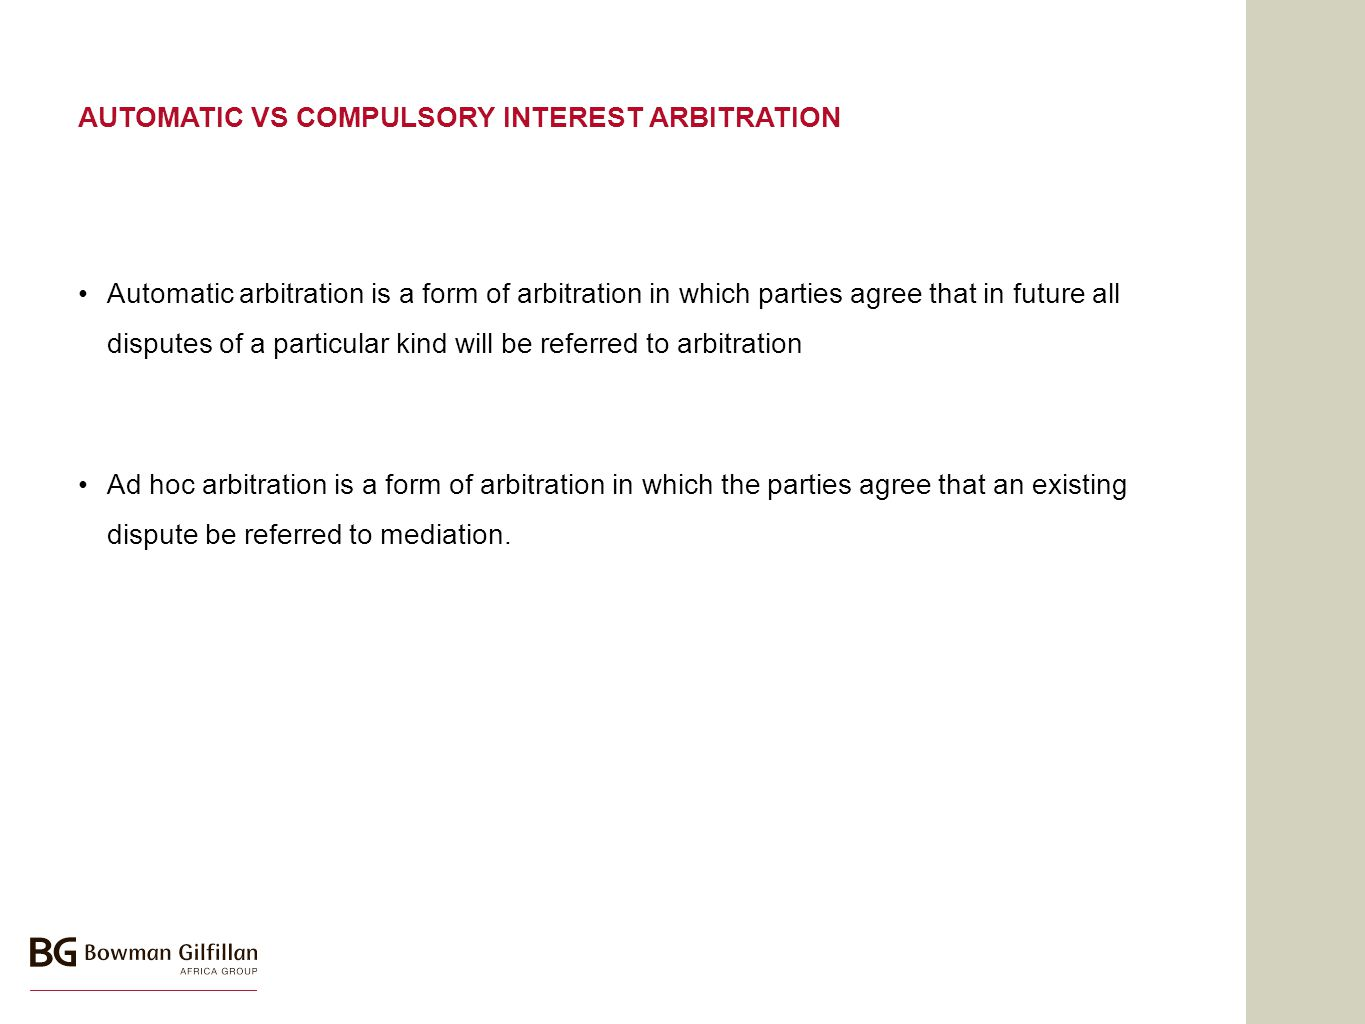 AUTOMATIC VS COMPULSORY INTEREST ARBITRATION Automatic arbitration is a form of arbitration in which parties agree that in future all disputes of a particular kind will be referred to arbitration Ad hoc arbitration is a form of arbitration in which the parties agree that an existing dispute be referred to mediation.